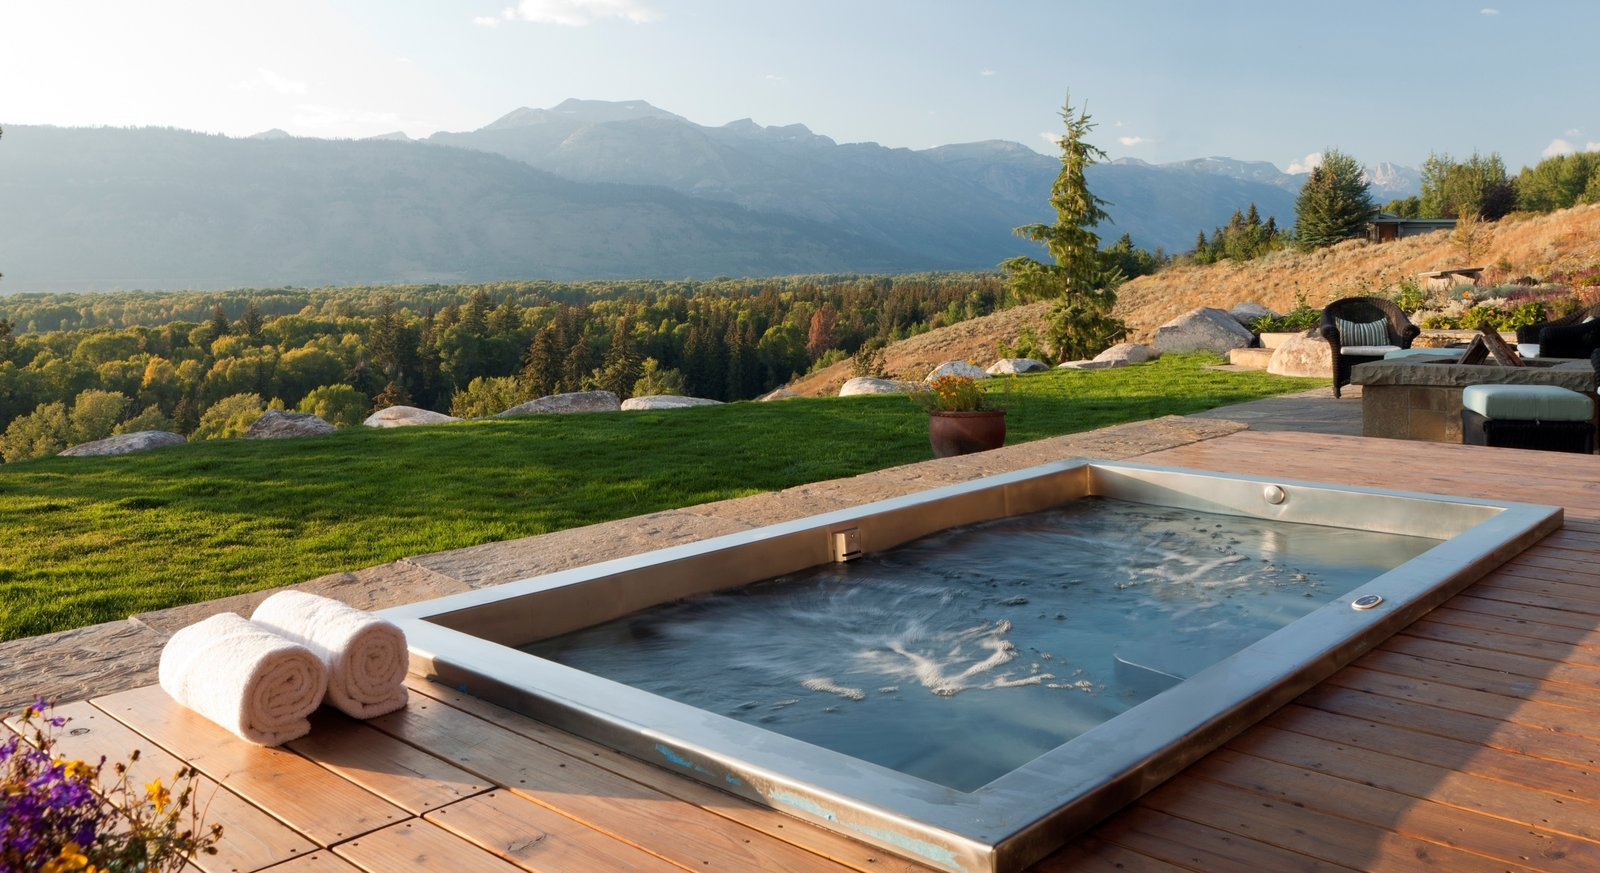 Photo 8 of 11 in 10 Modern Hot Tubs from Japanese-Inspired Backyard ...